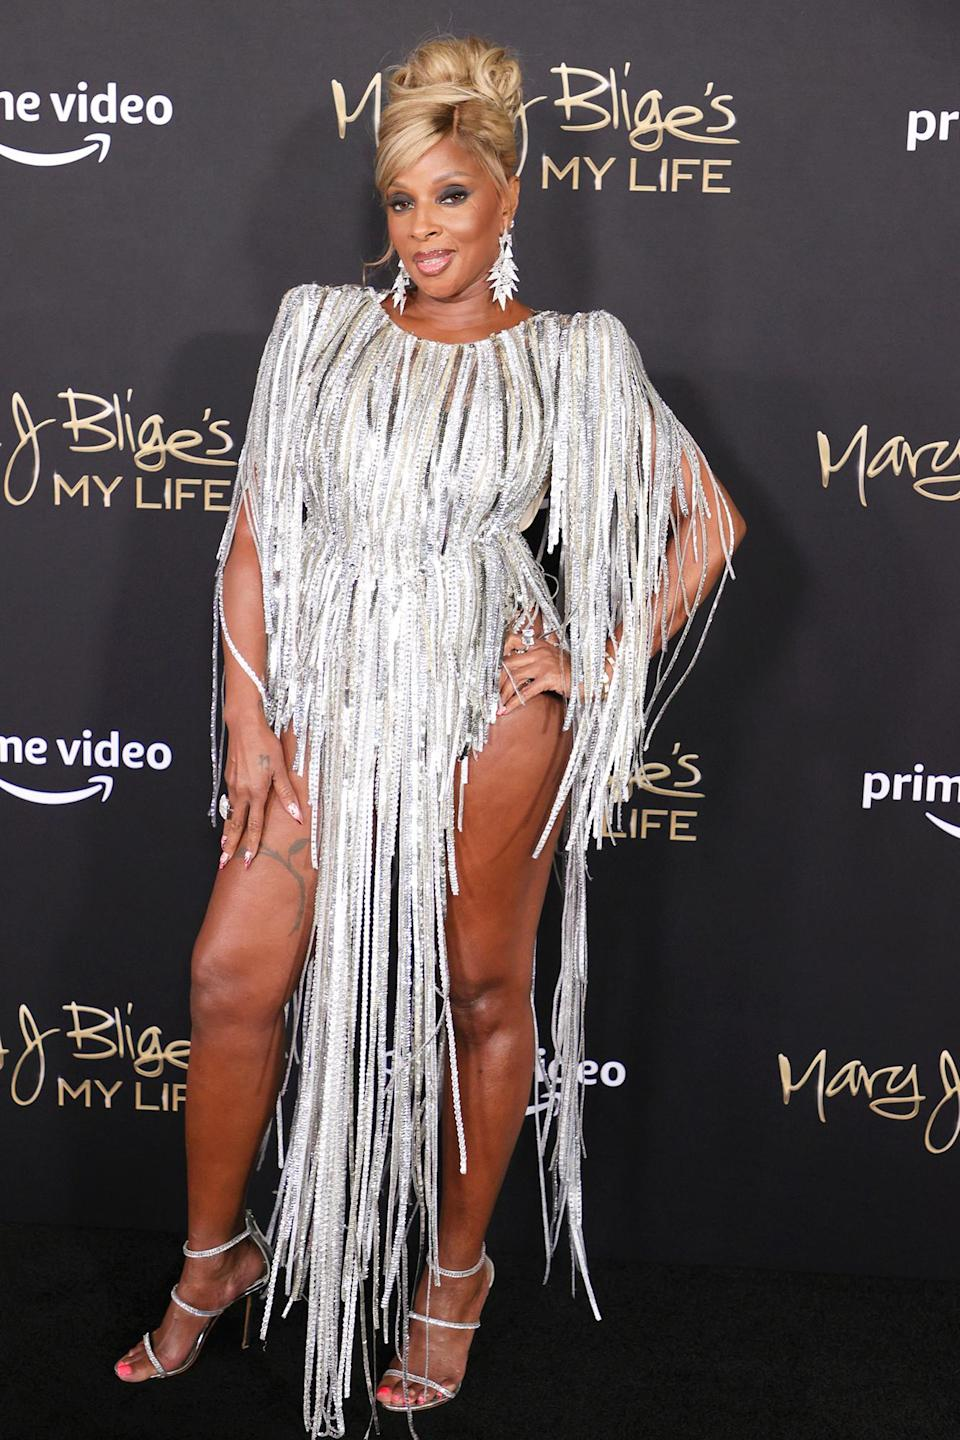 mary-j-blige-celebrates-25-years-of-my-life-at-nyc-documentary-premiere